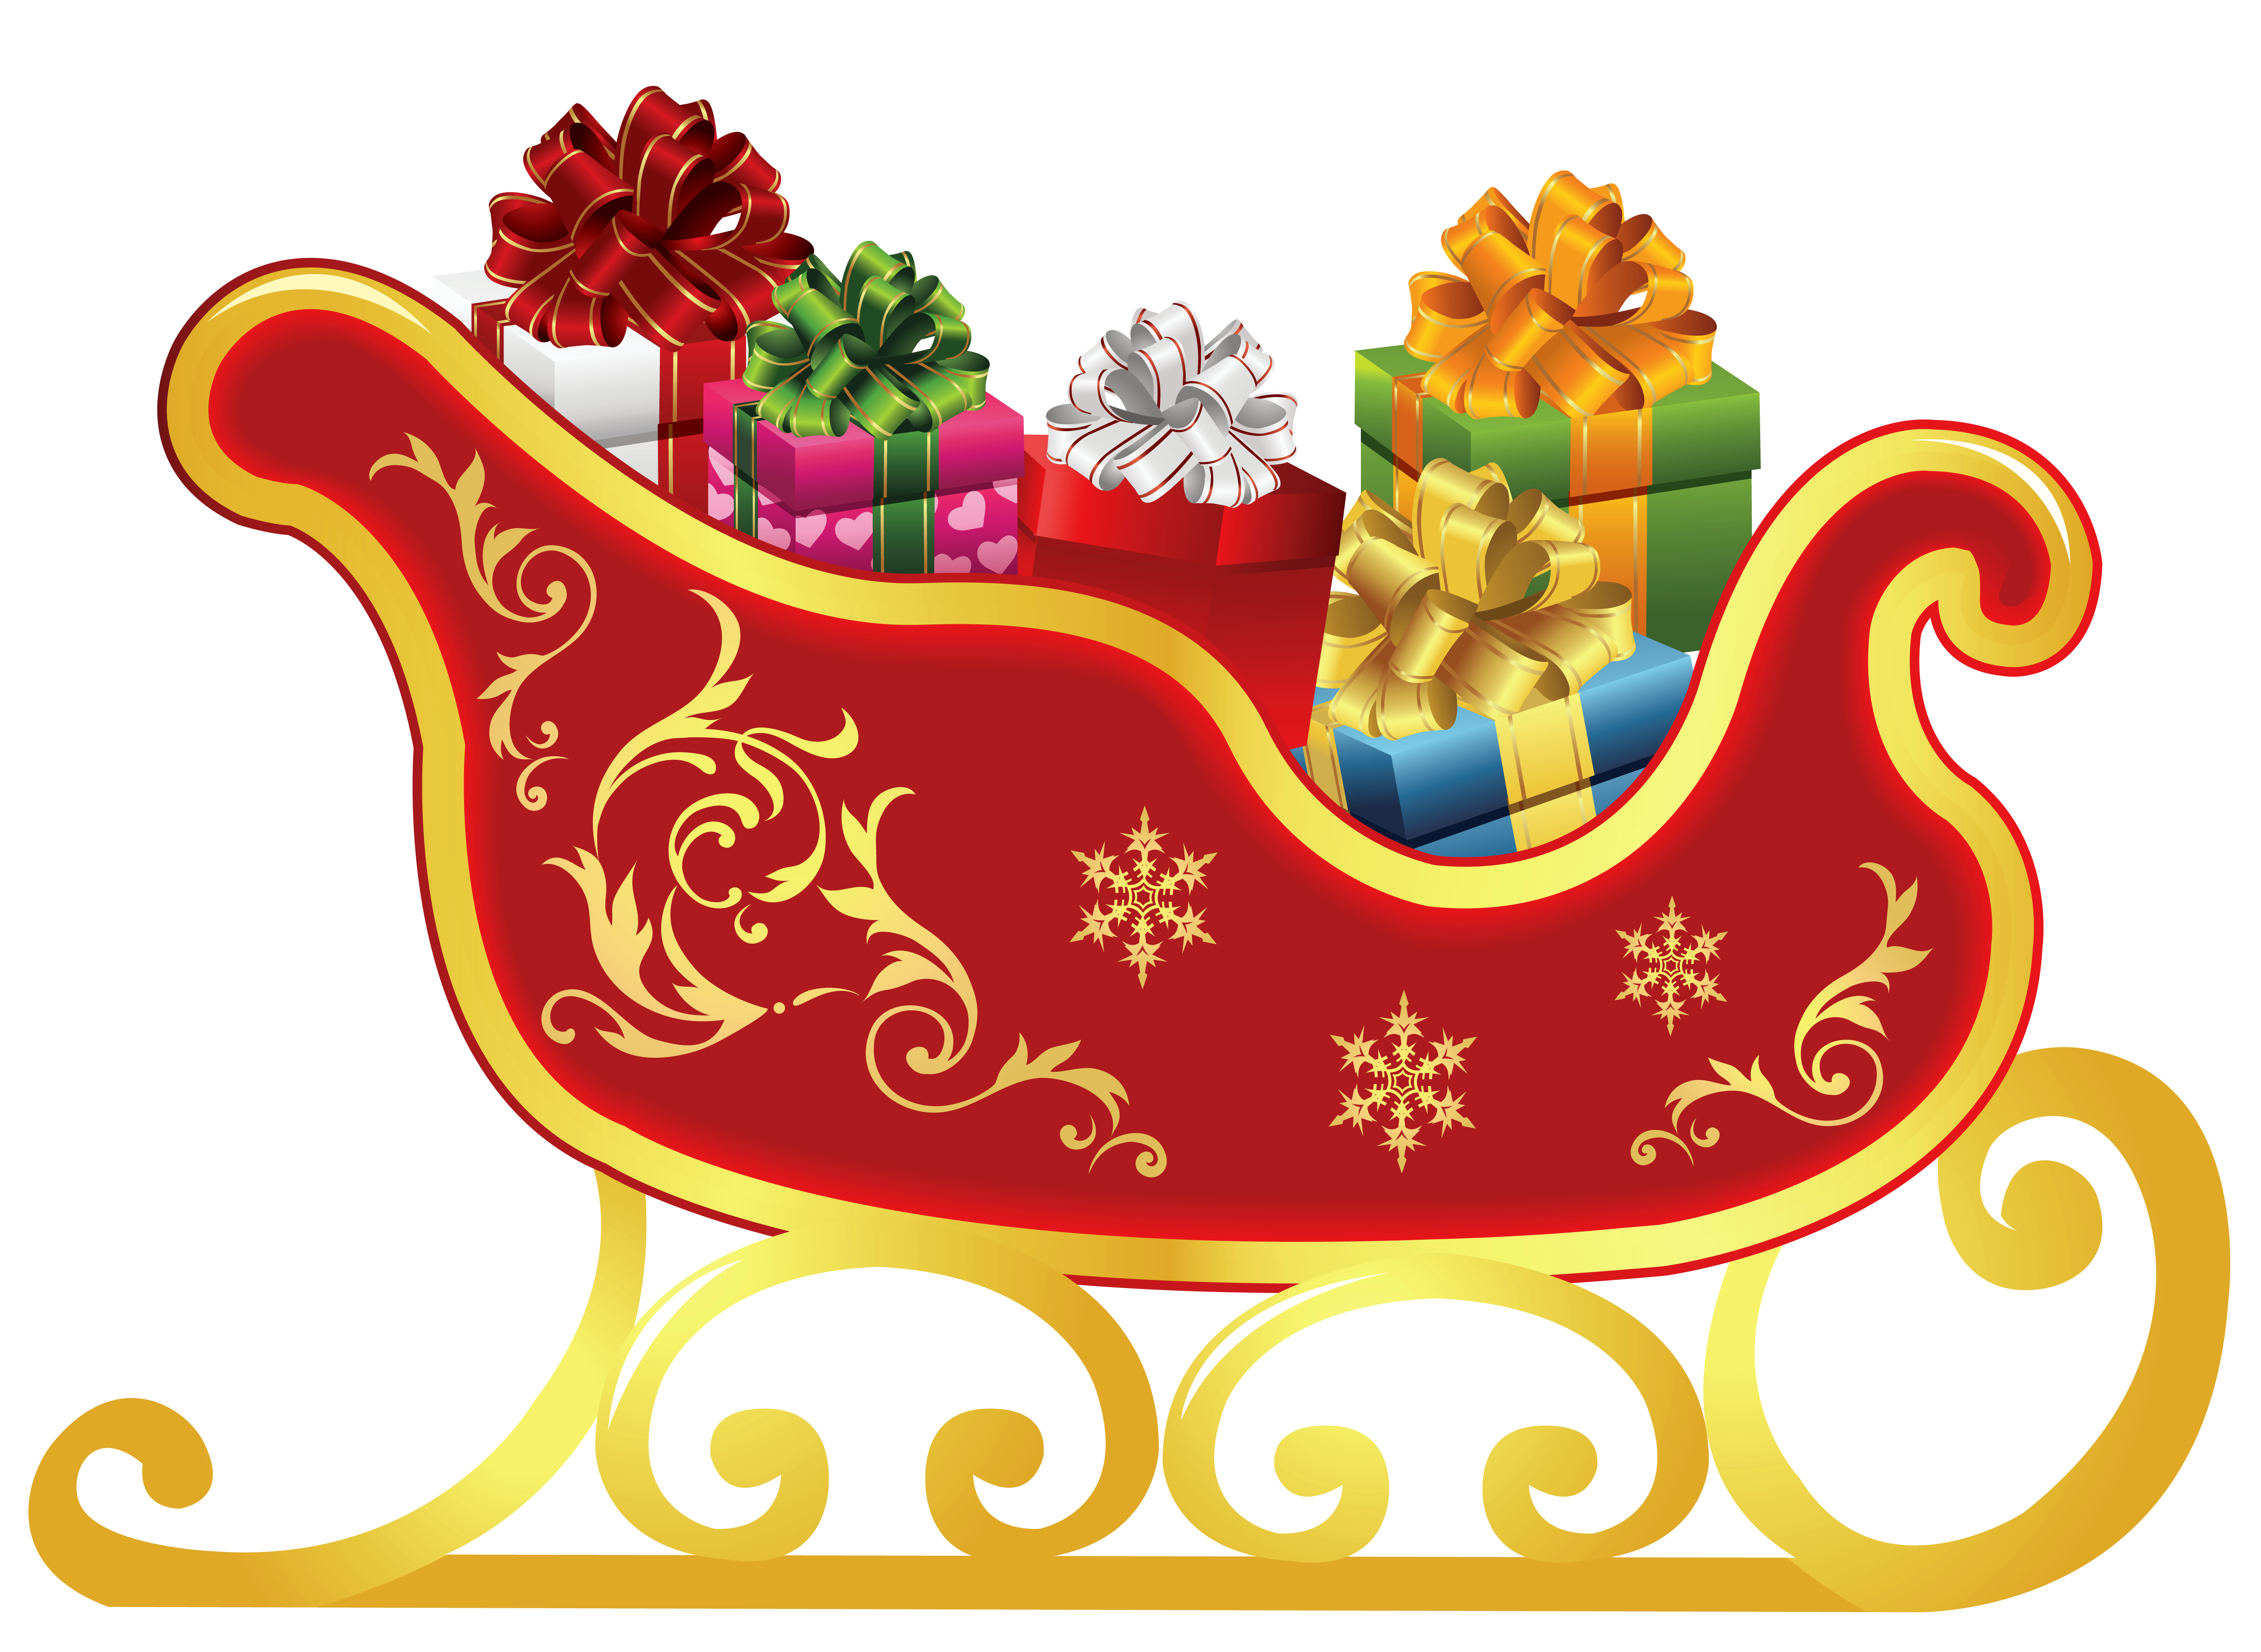 Free Sleigh Cliparts, Download Free Clip Art, Free Clip Art.